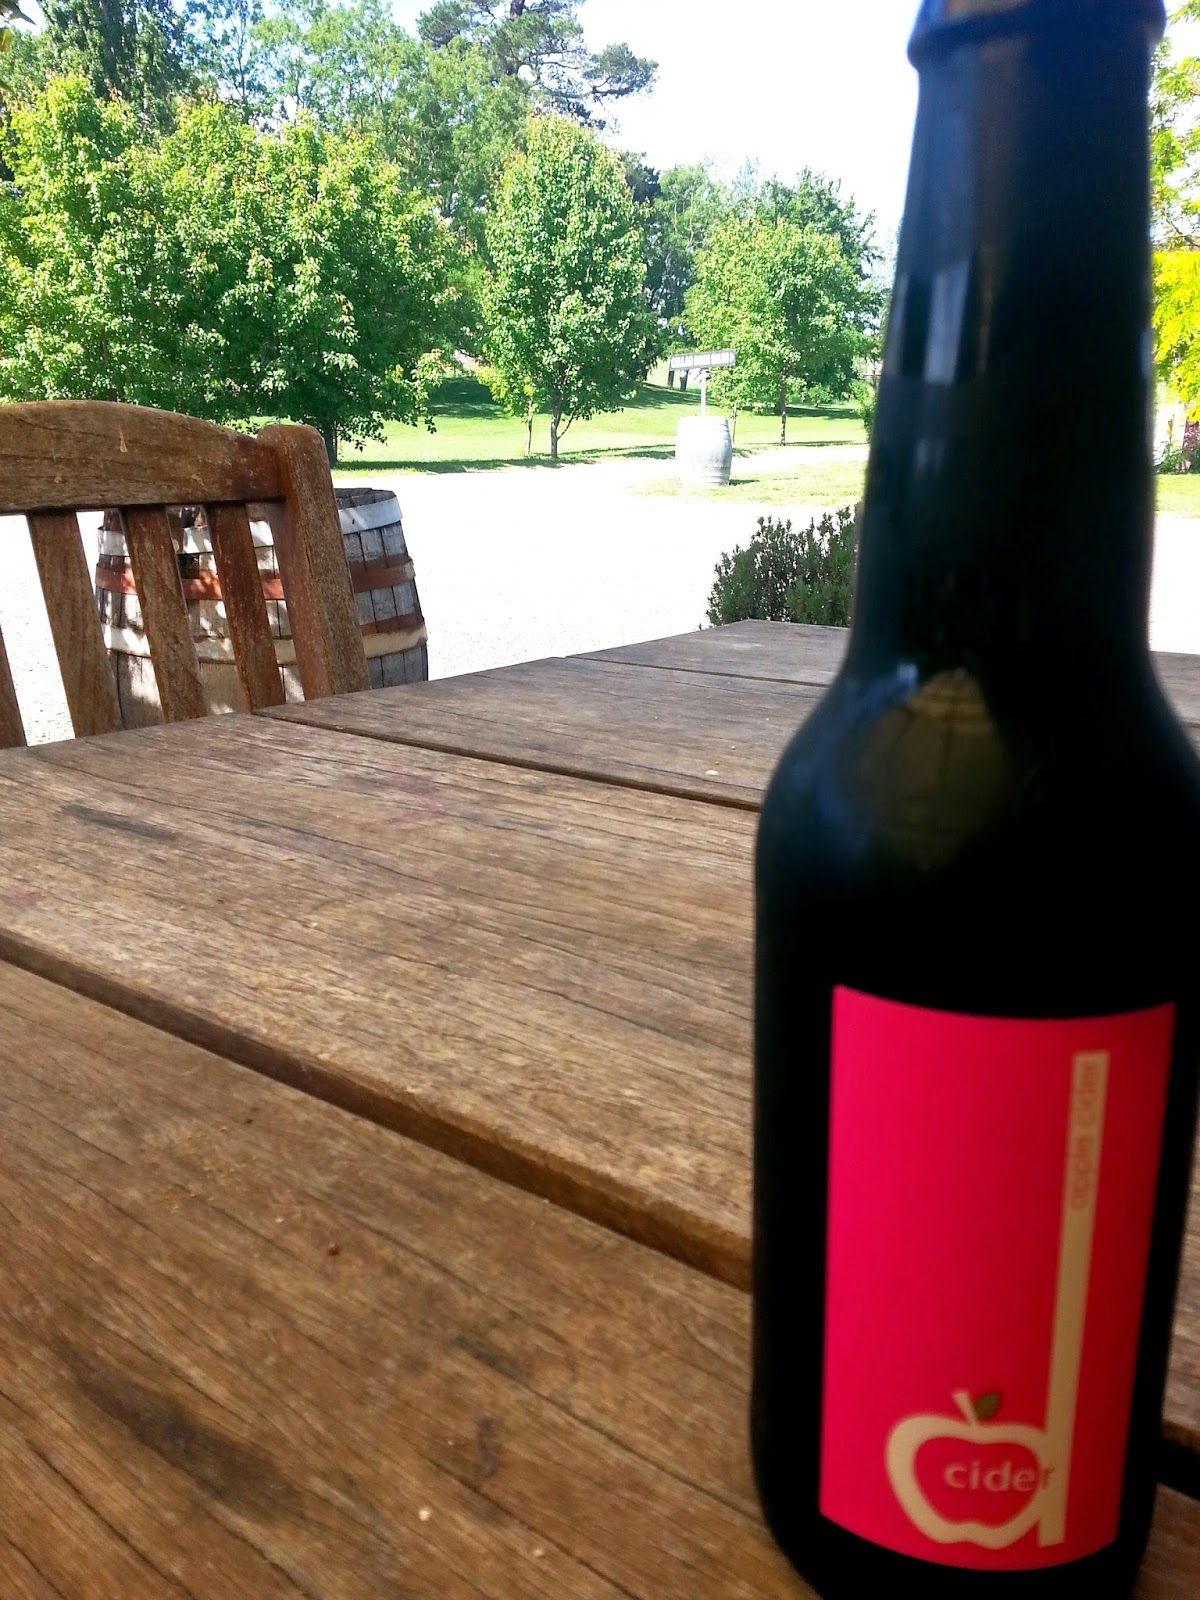 Bottle of Dcider on a patio table  in a garden.